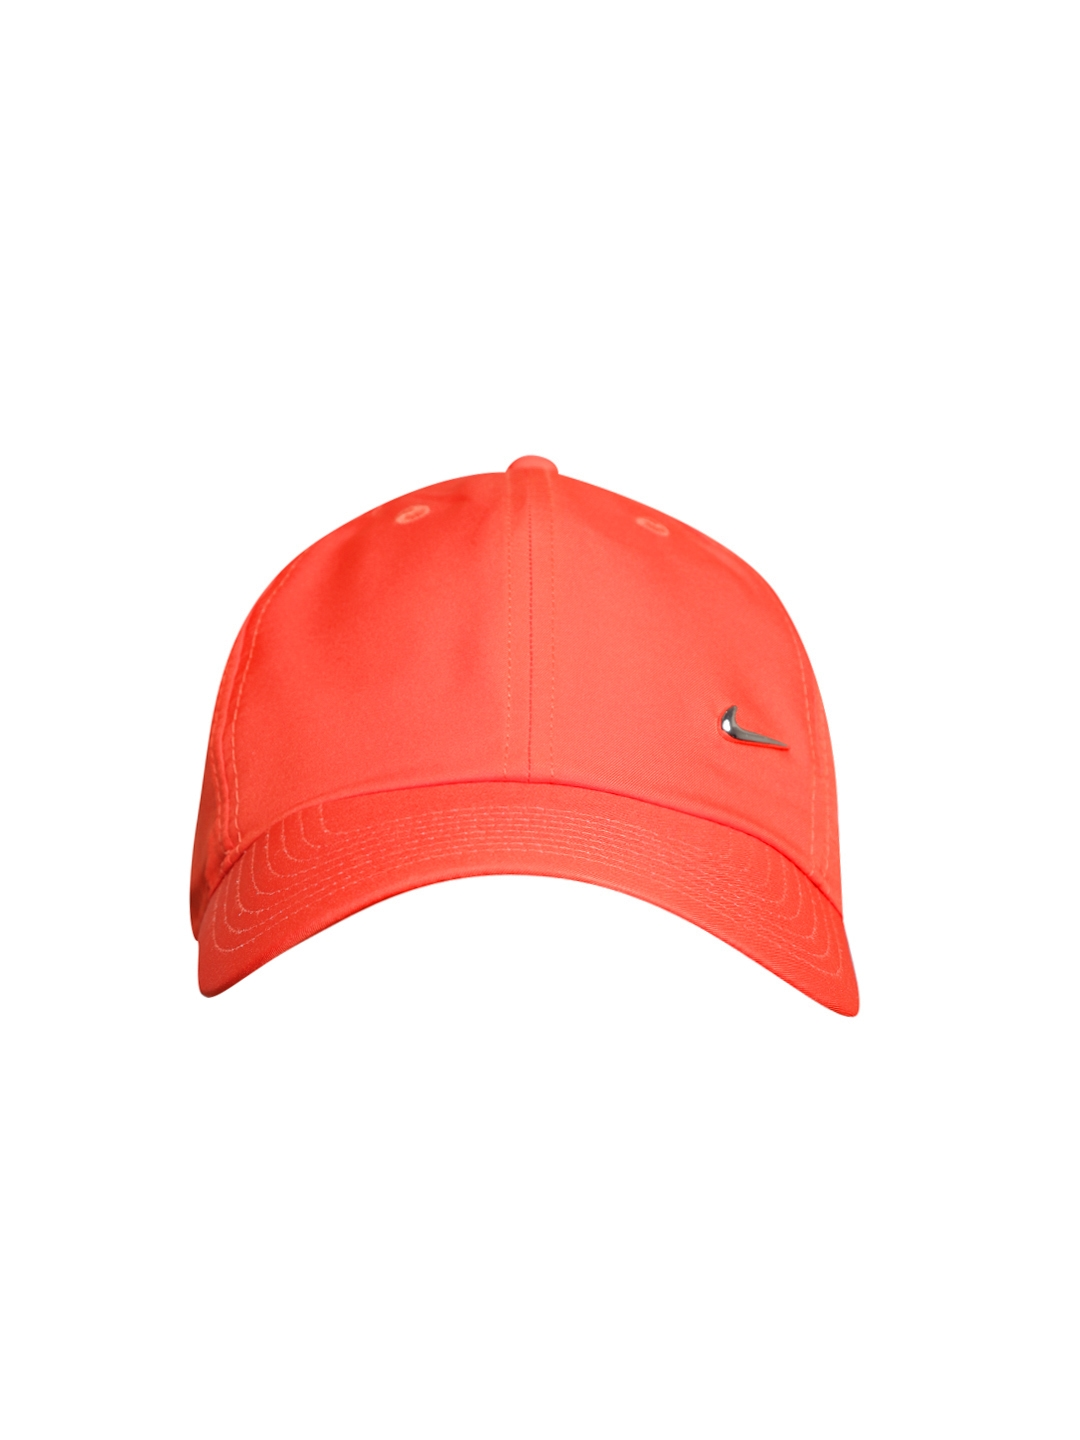 ef3c08622e5 Buy Nike Unisex Coral Orange H86 Metal Swoosh Solid Training Cap ...